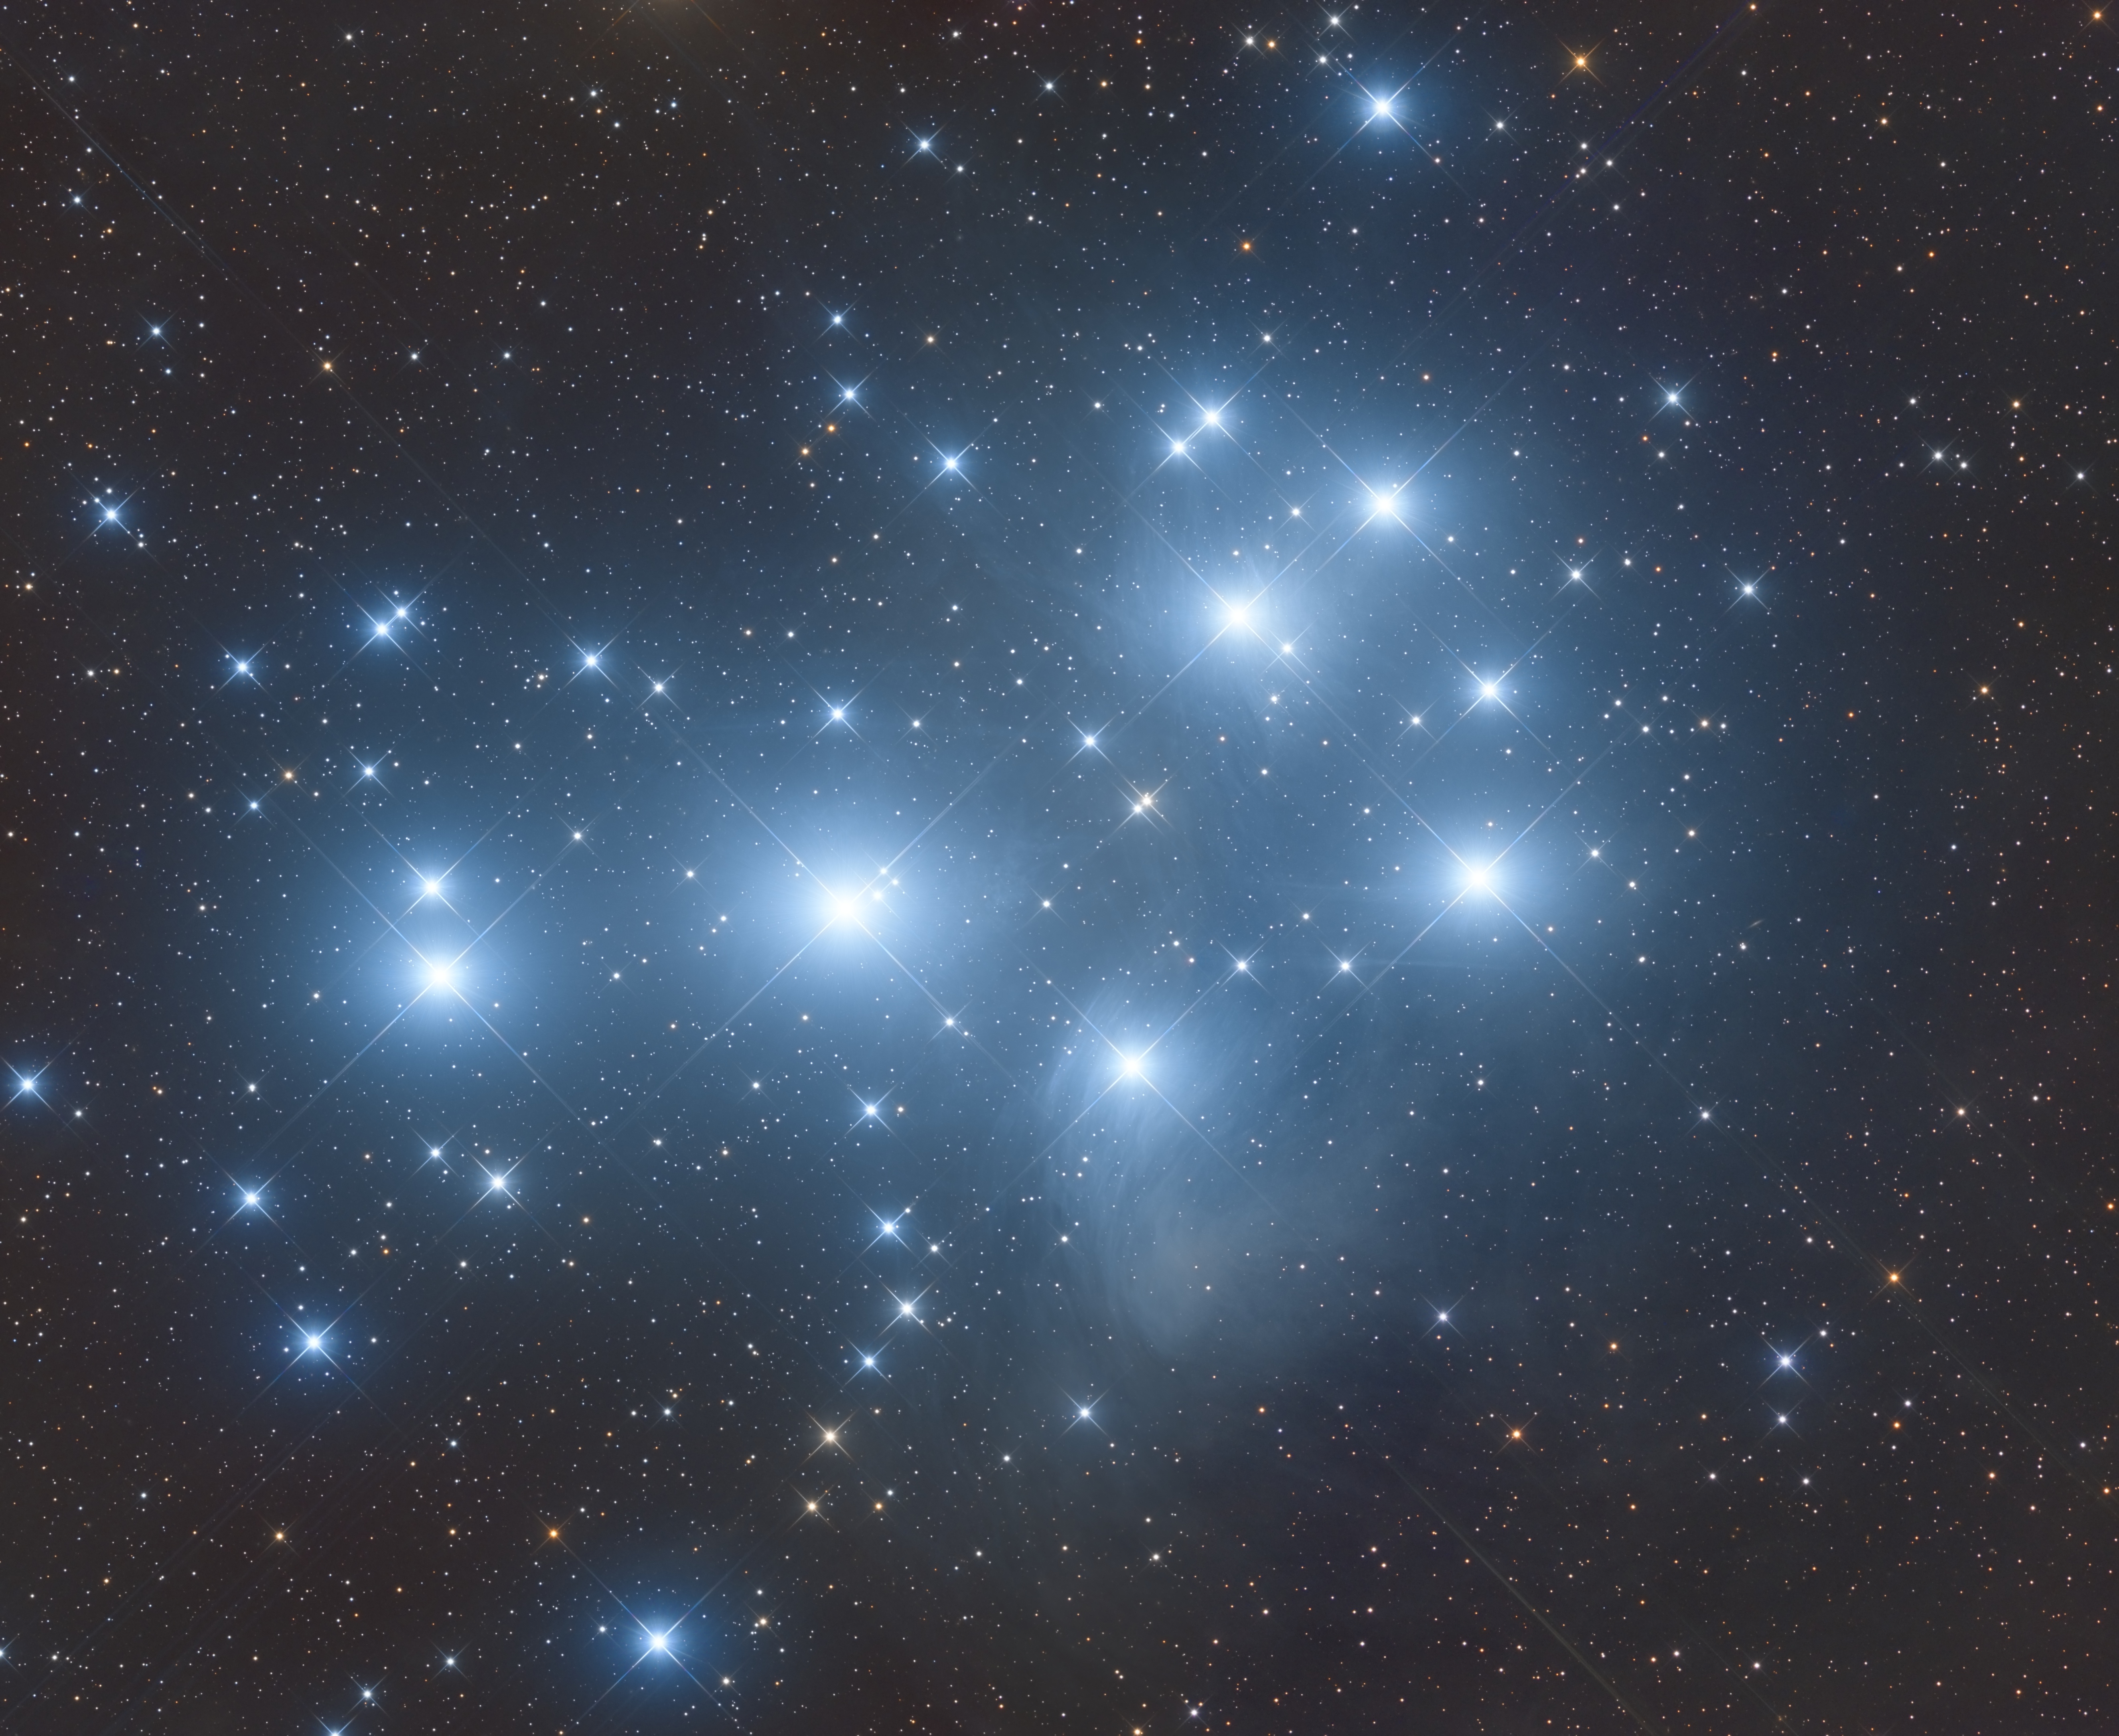 Twinkling Stars: Skywatcher Snaps Stunning View of Pleiades Star Cluster